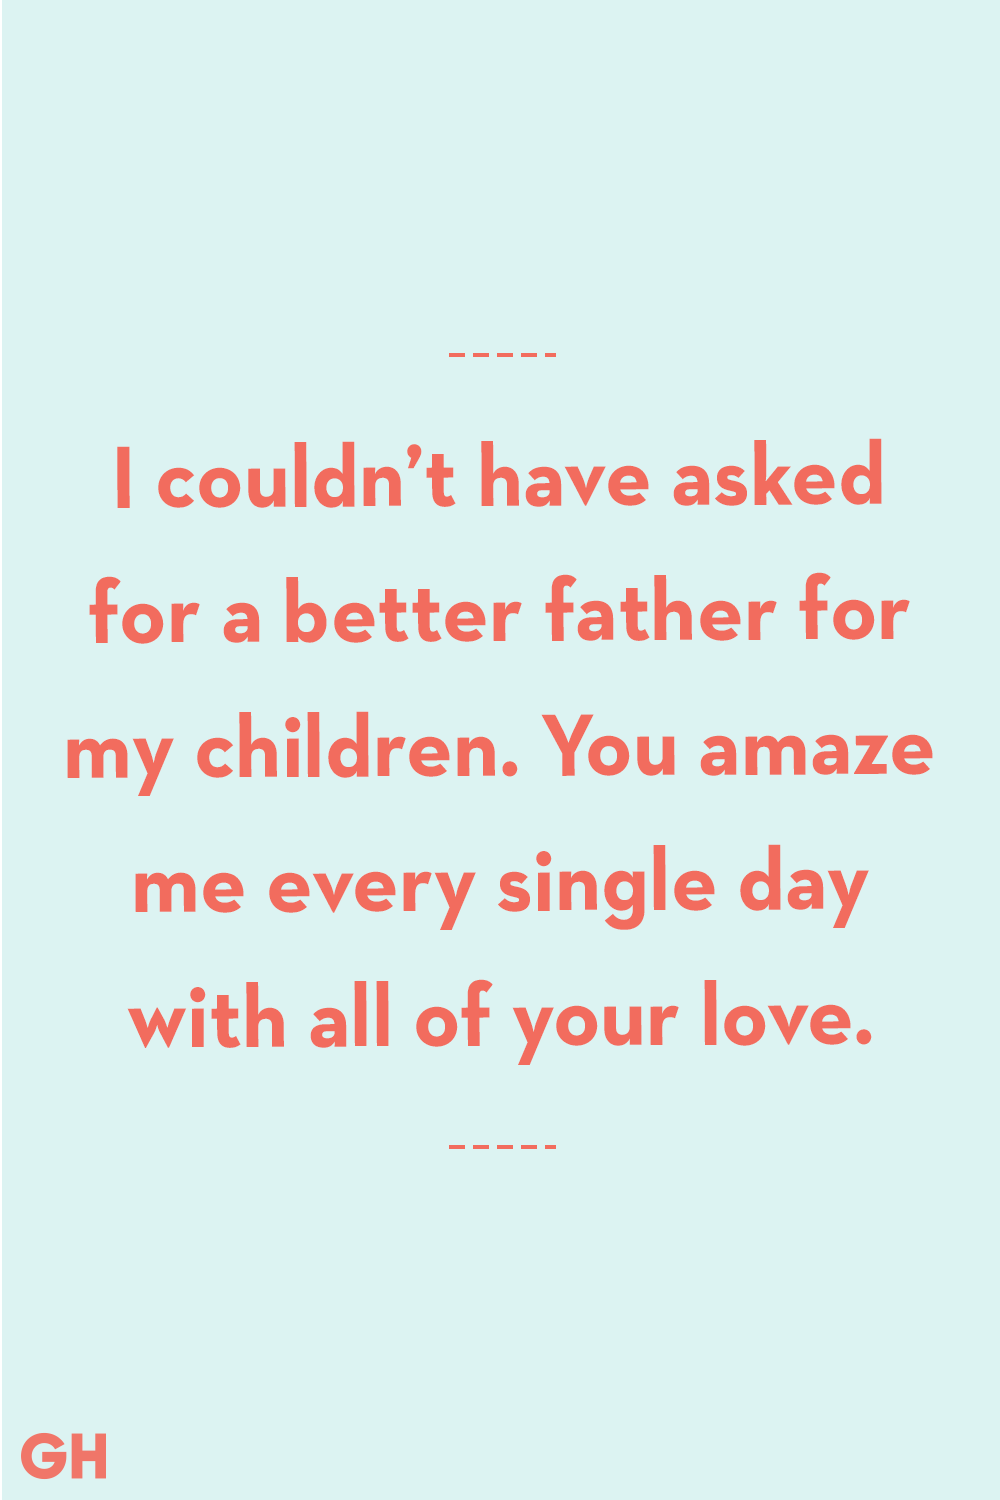 20 Father's Day Quotes From Wife - Quotes From Wife to